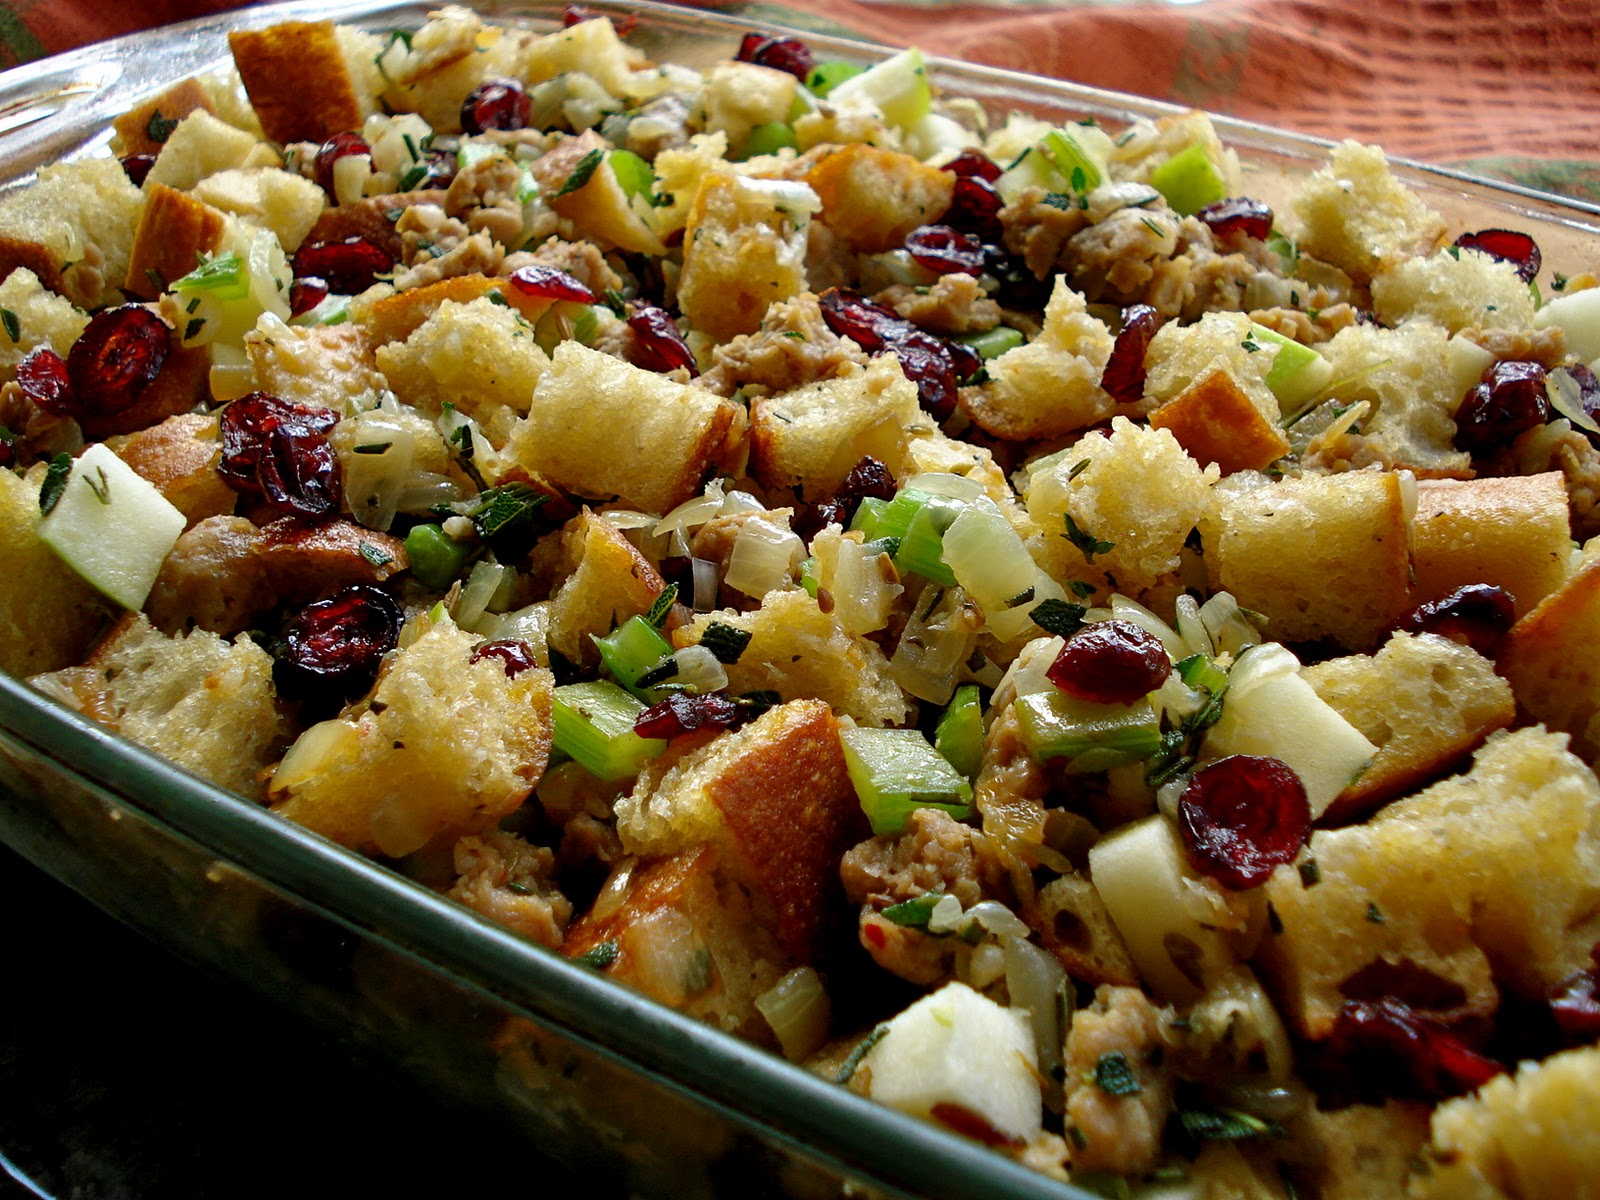 Simple Pleasures: Sausage, Apple and Herb Stuffing